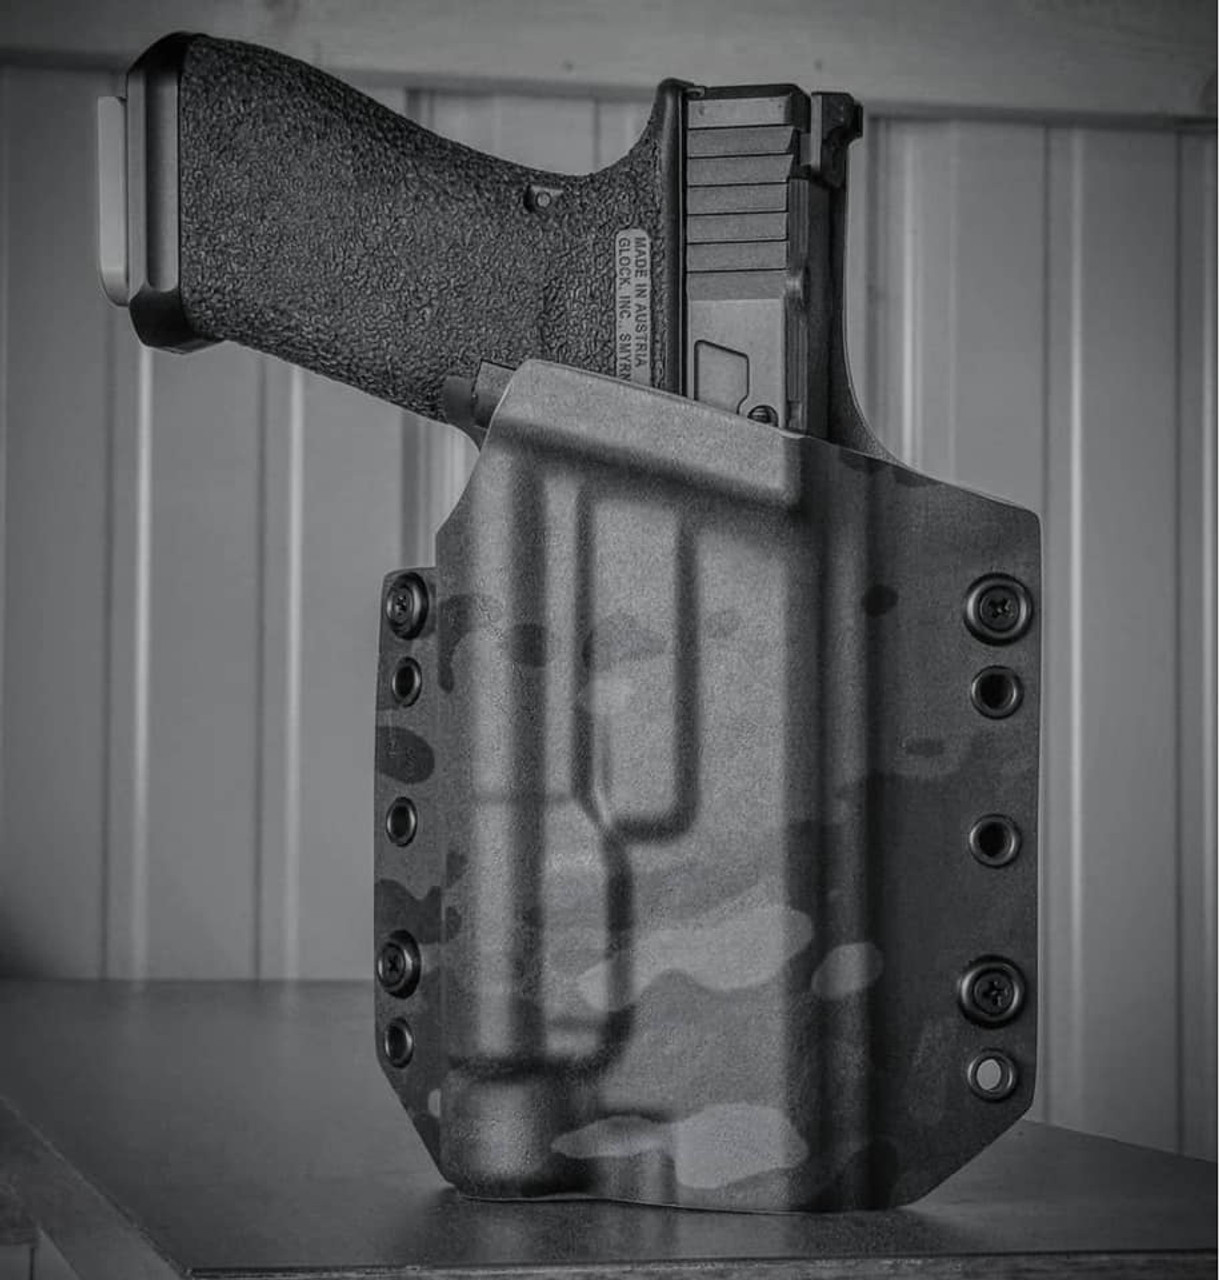 Glock 17 TLR1 Black Multicam OWB Holster